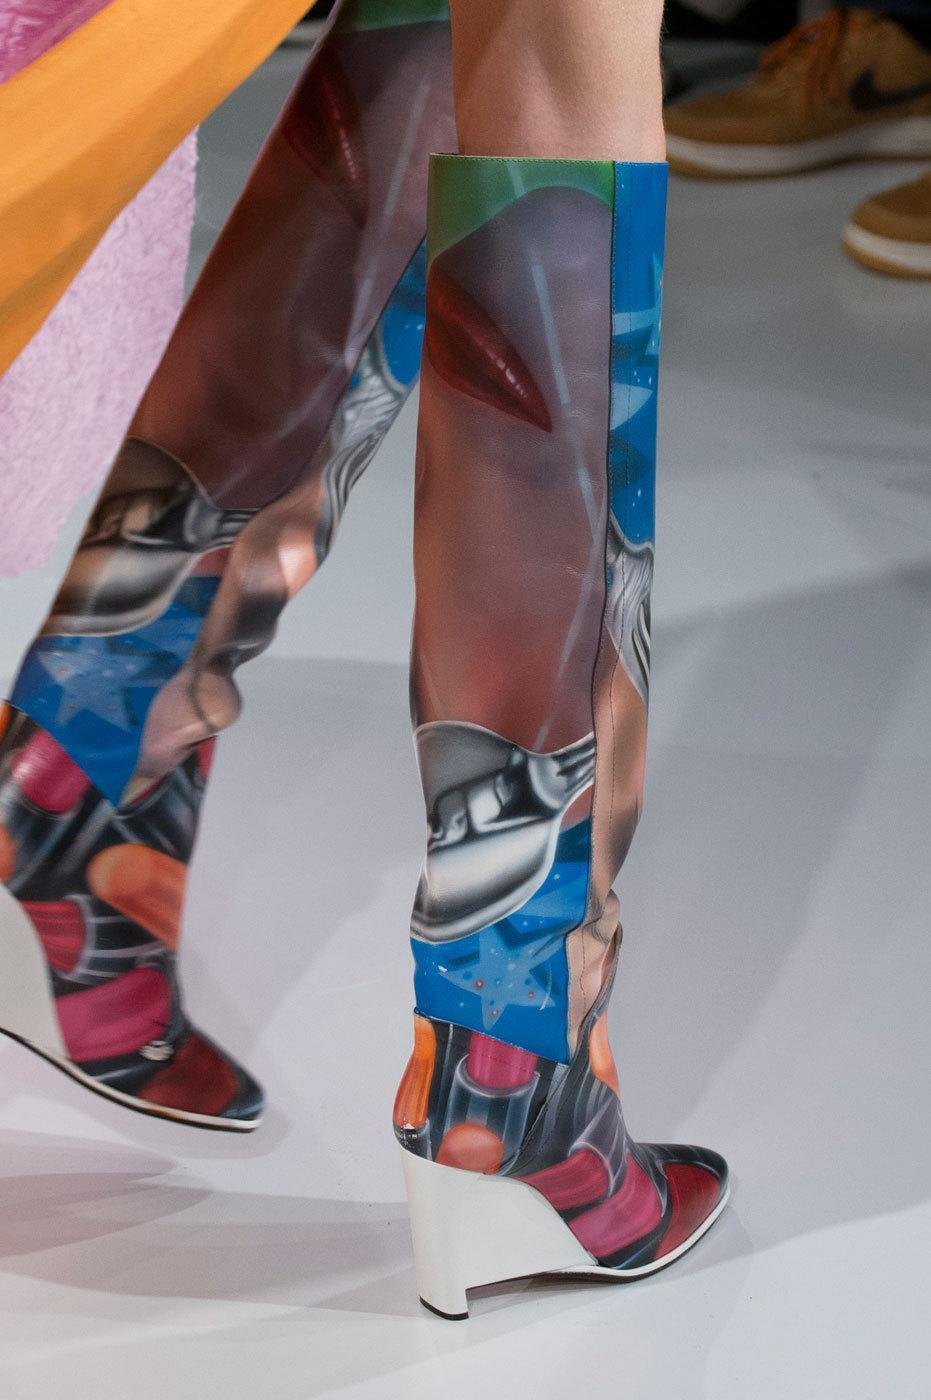 """<p>Who said airbrushed scenes were just for vans? At <a href=""""http://eboutique.maisonmargiela.com/"""" rel=""""nofollow noopener"""" target=""""_blank"""" data-ylk=""""slk:Maison Margiela"""" class=""""link rapid-noclick-resp"""">Maison Margiela</a>, John Galliano thinks these boots were made for tripping. <i>Photos: Imaxtree</i></p>"""